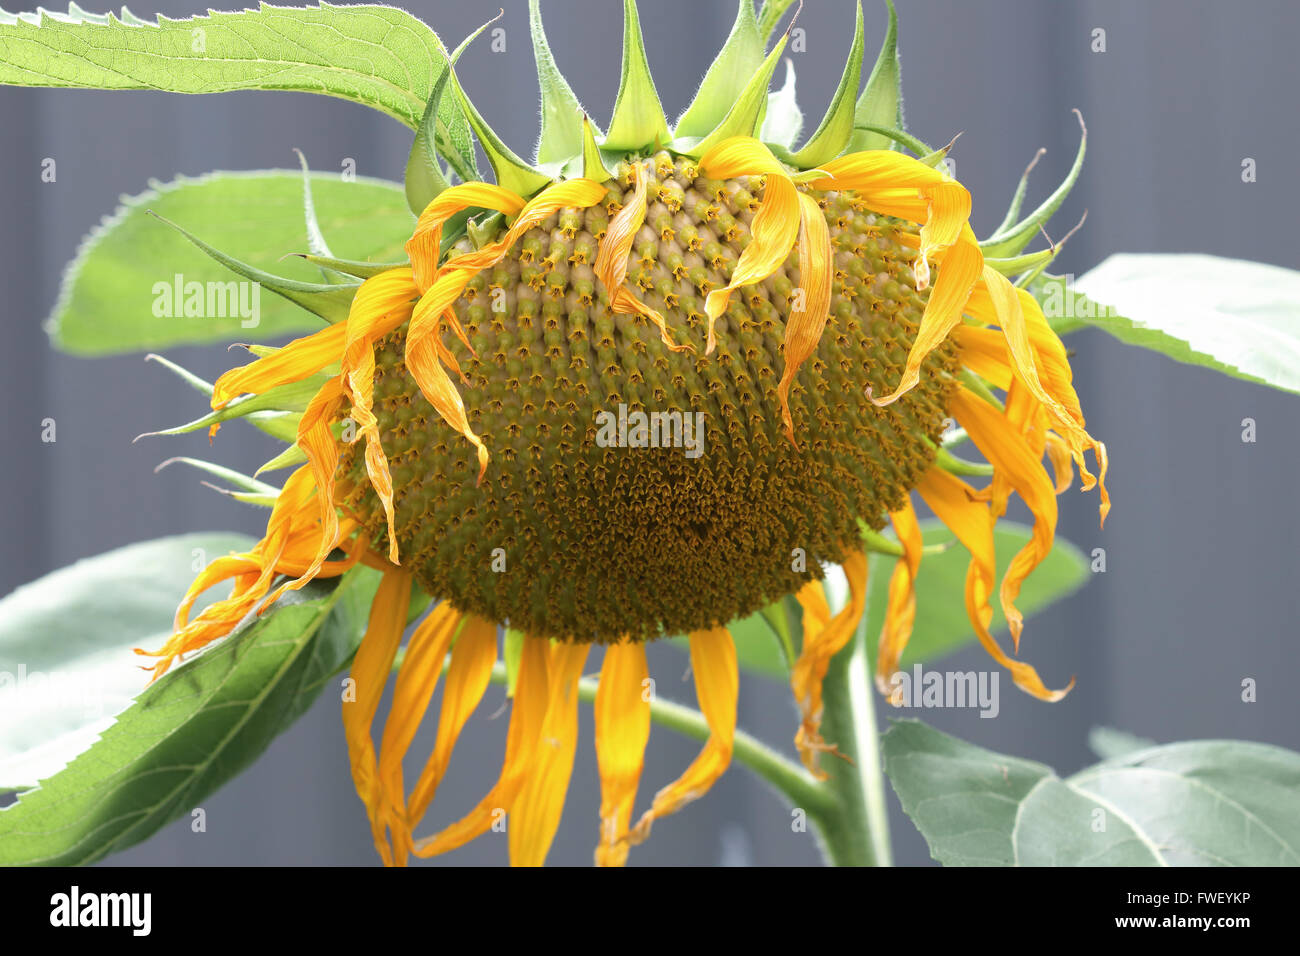 Fresh Sunflower Seeds On Sunflower Crown Stock Photo 101747290 Alamy